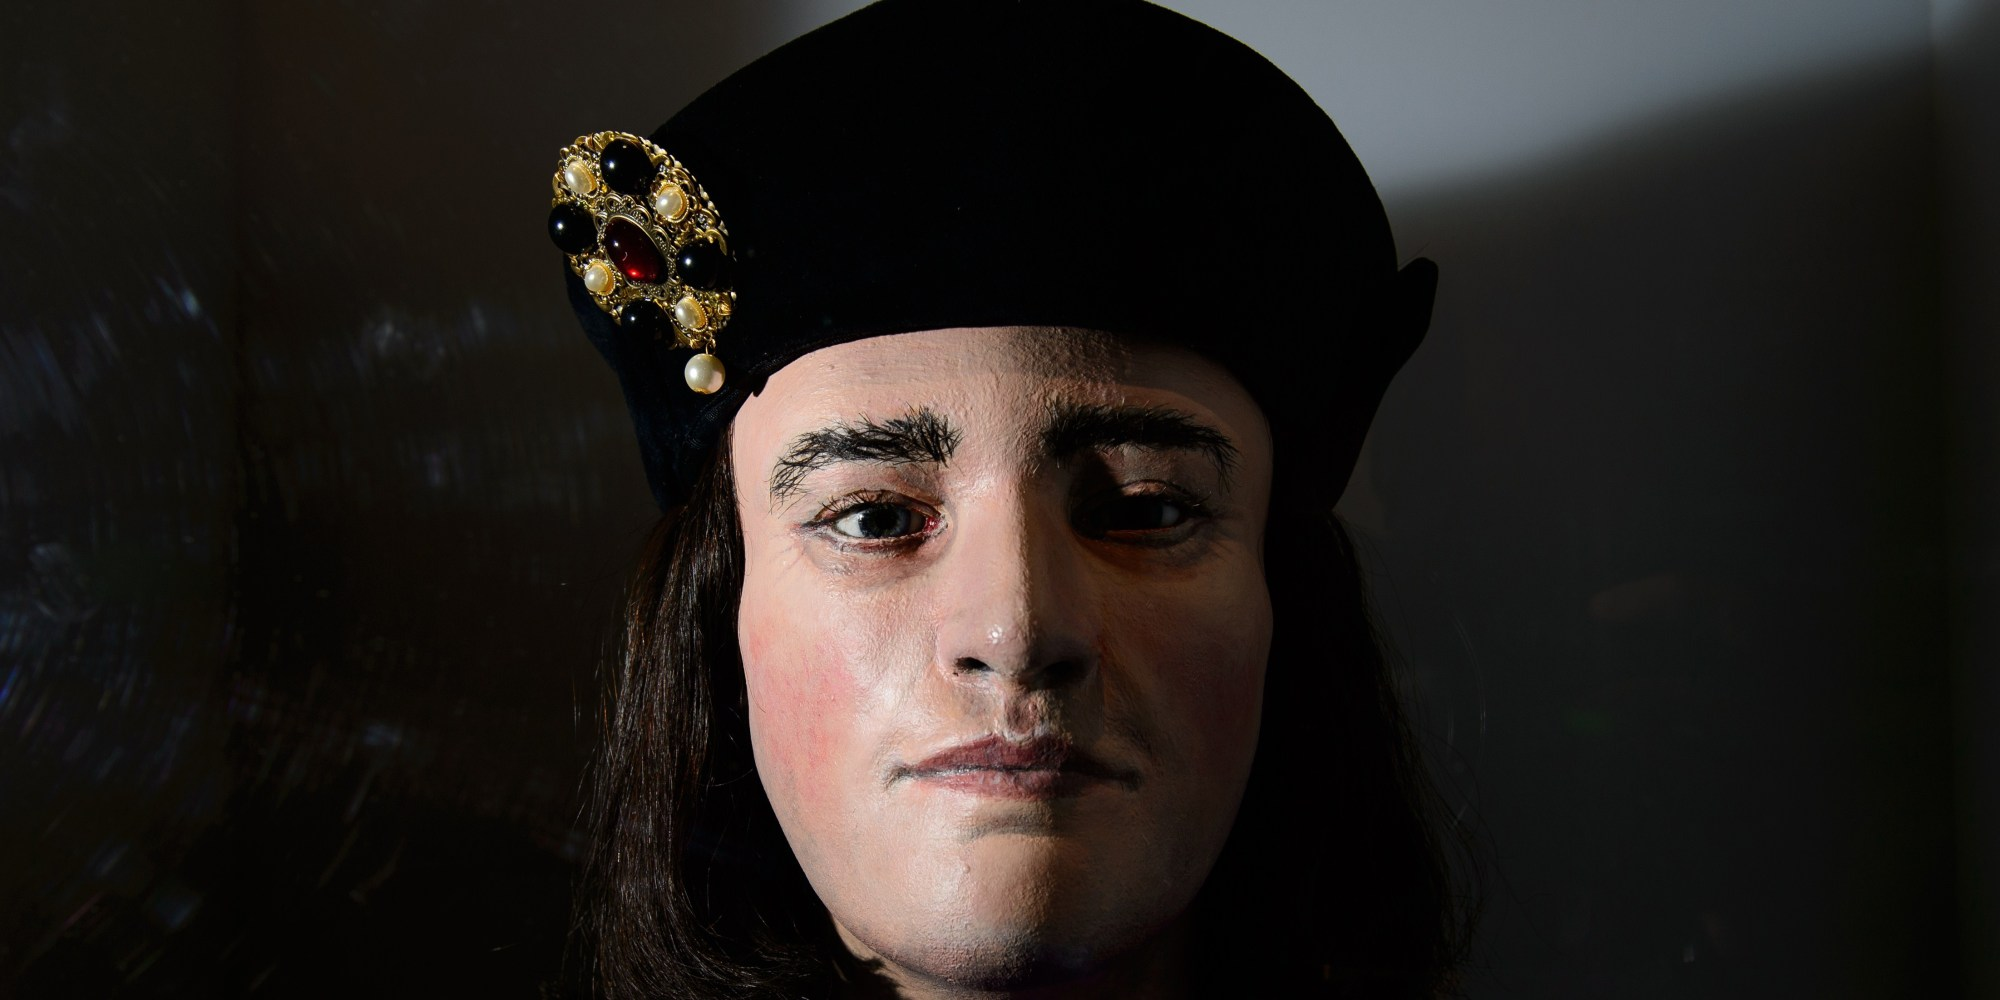 essay on king richard iii King richard iii and looking for richard essay plan essay plan intro both shakespeare's richard iii and al pacino's looking for richard both portray central values and ideas of the.